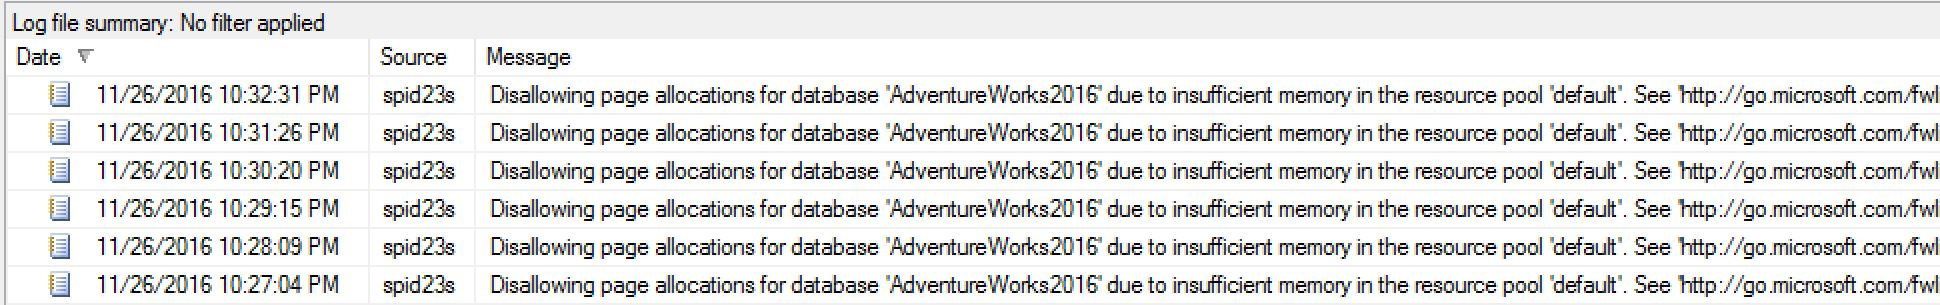 SQL SERVER - Error - Disallowing page allocations for database 'DB' due to insufficient memory in the resource pool insufficent-memory-01